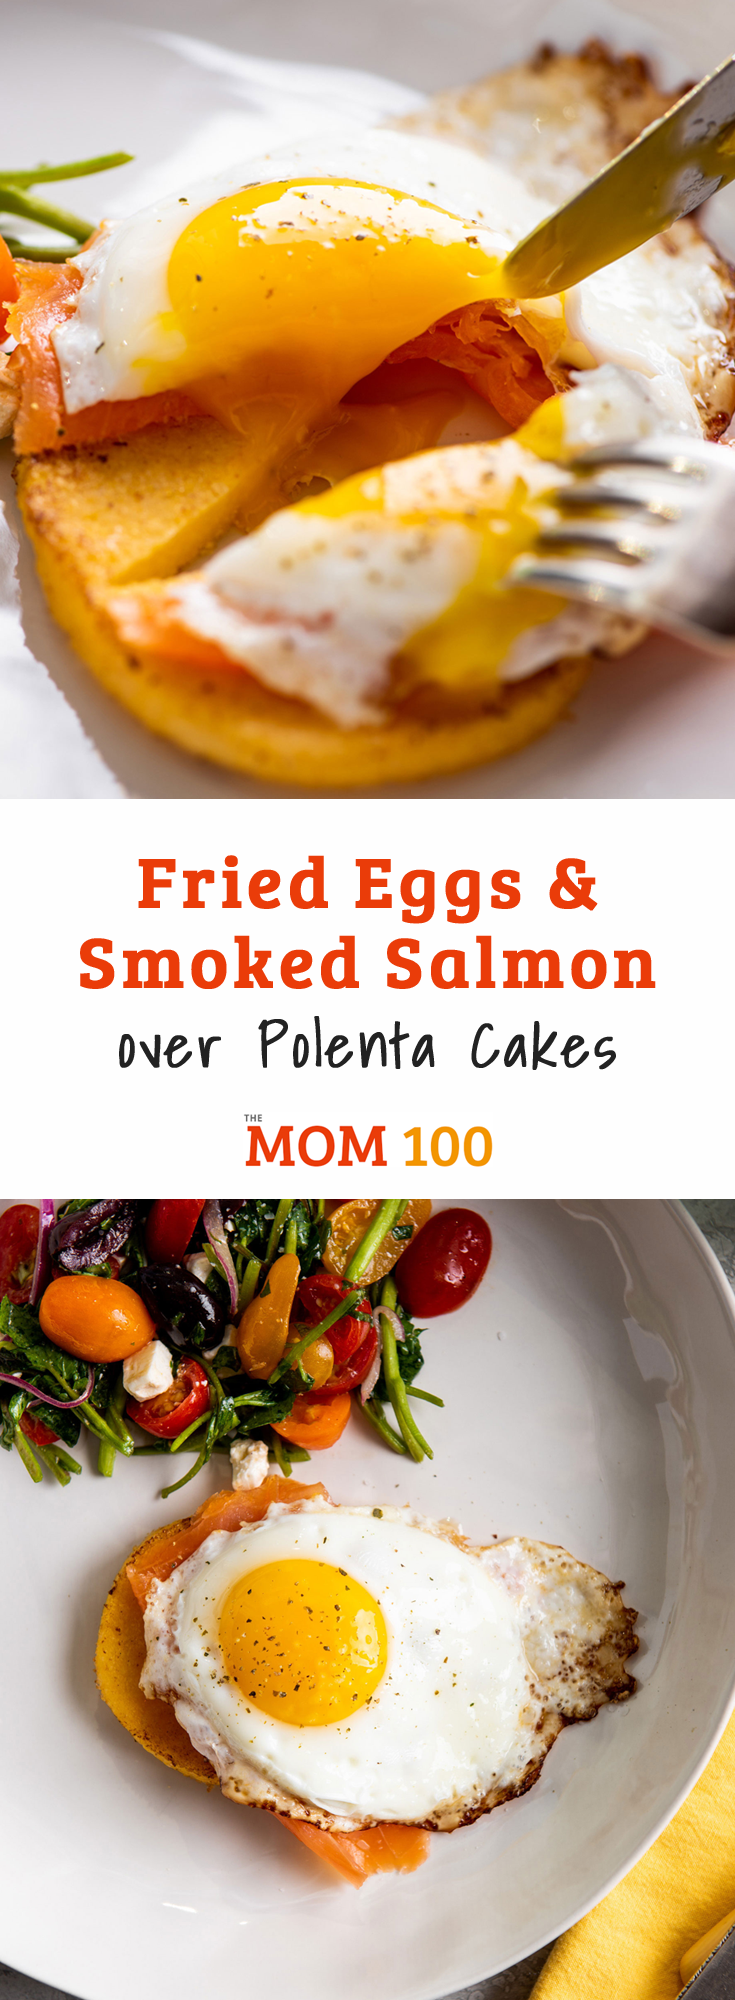 Fried Eggs and Smoked Salmon over Polenta Cakes. Anything good gets better when you put a fried egg on top and this brunch dish is no exception.